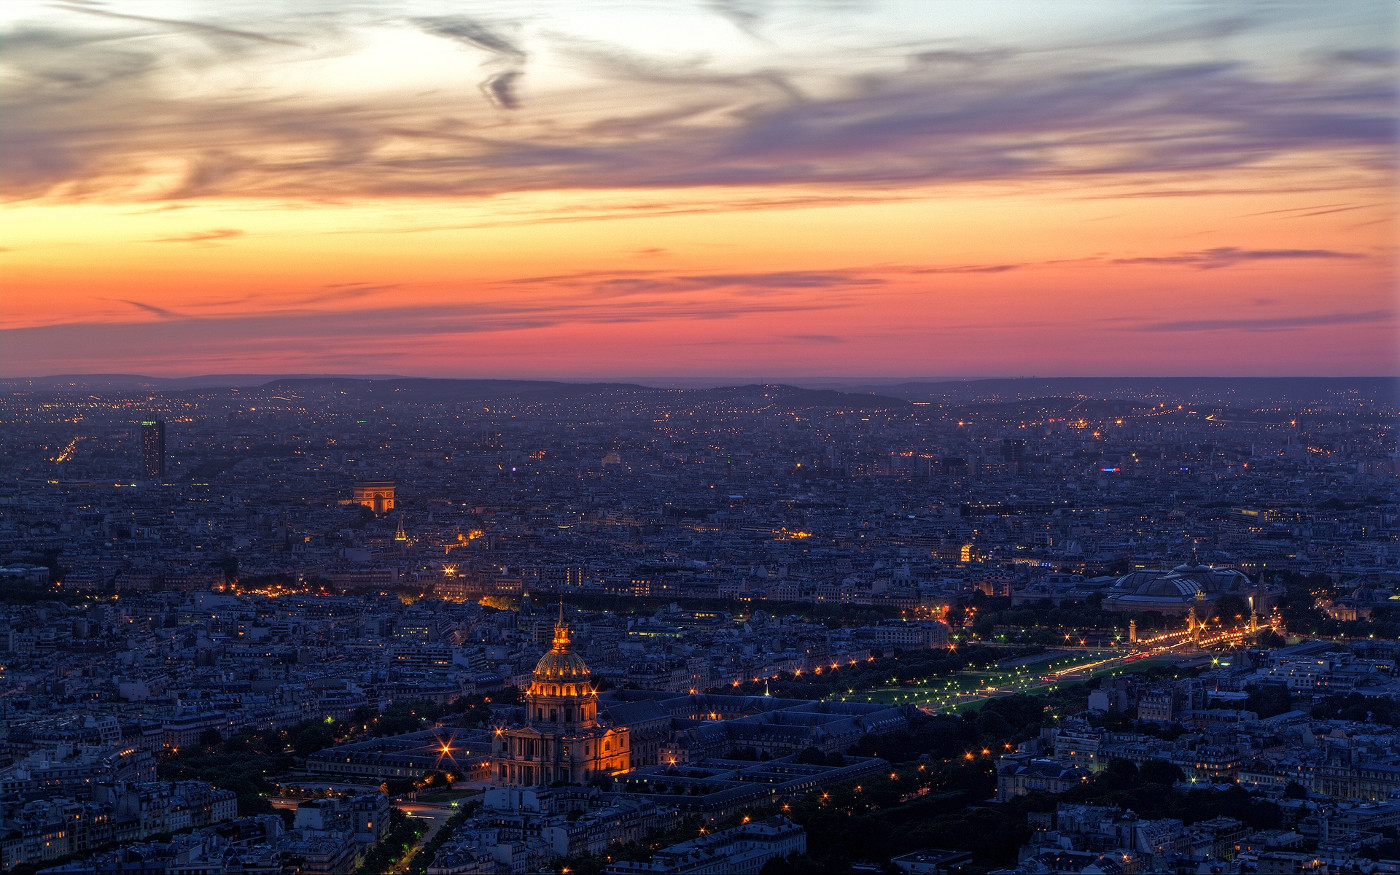 sky view with sunset paris background